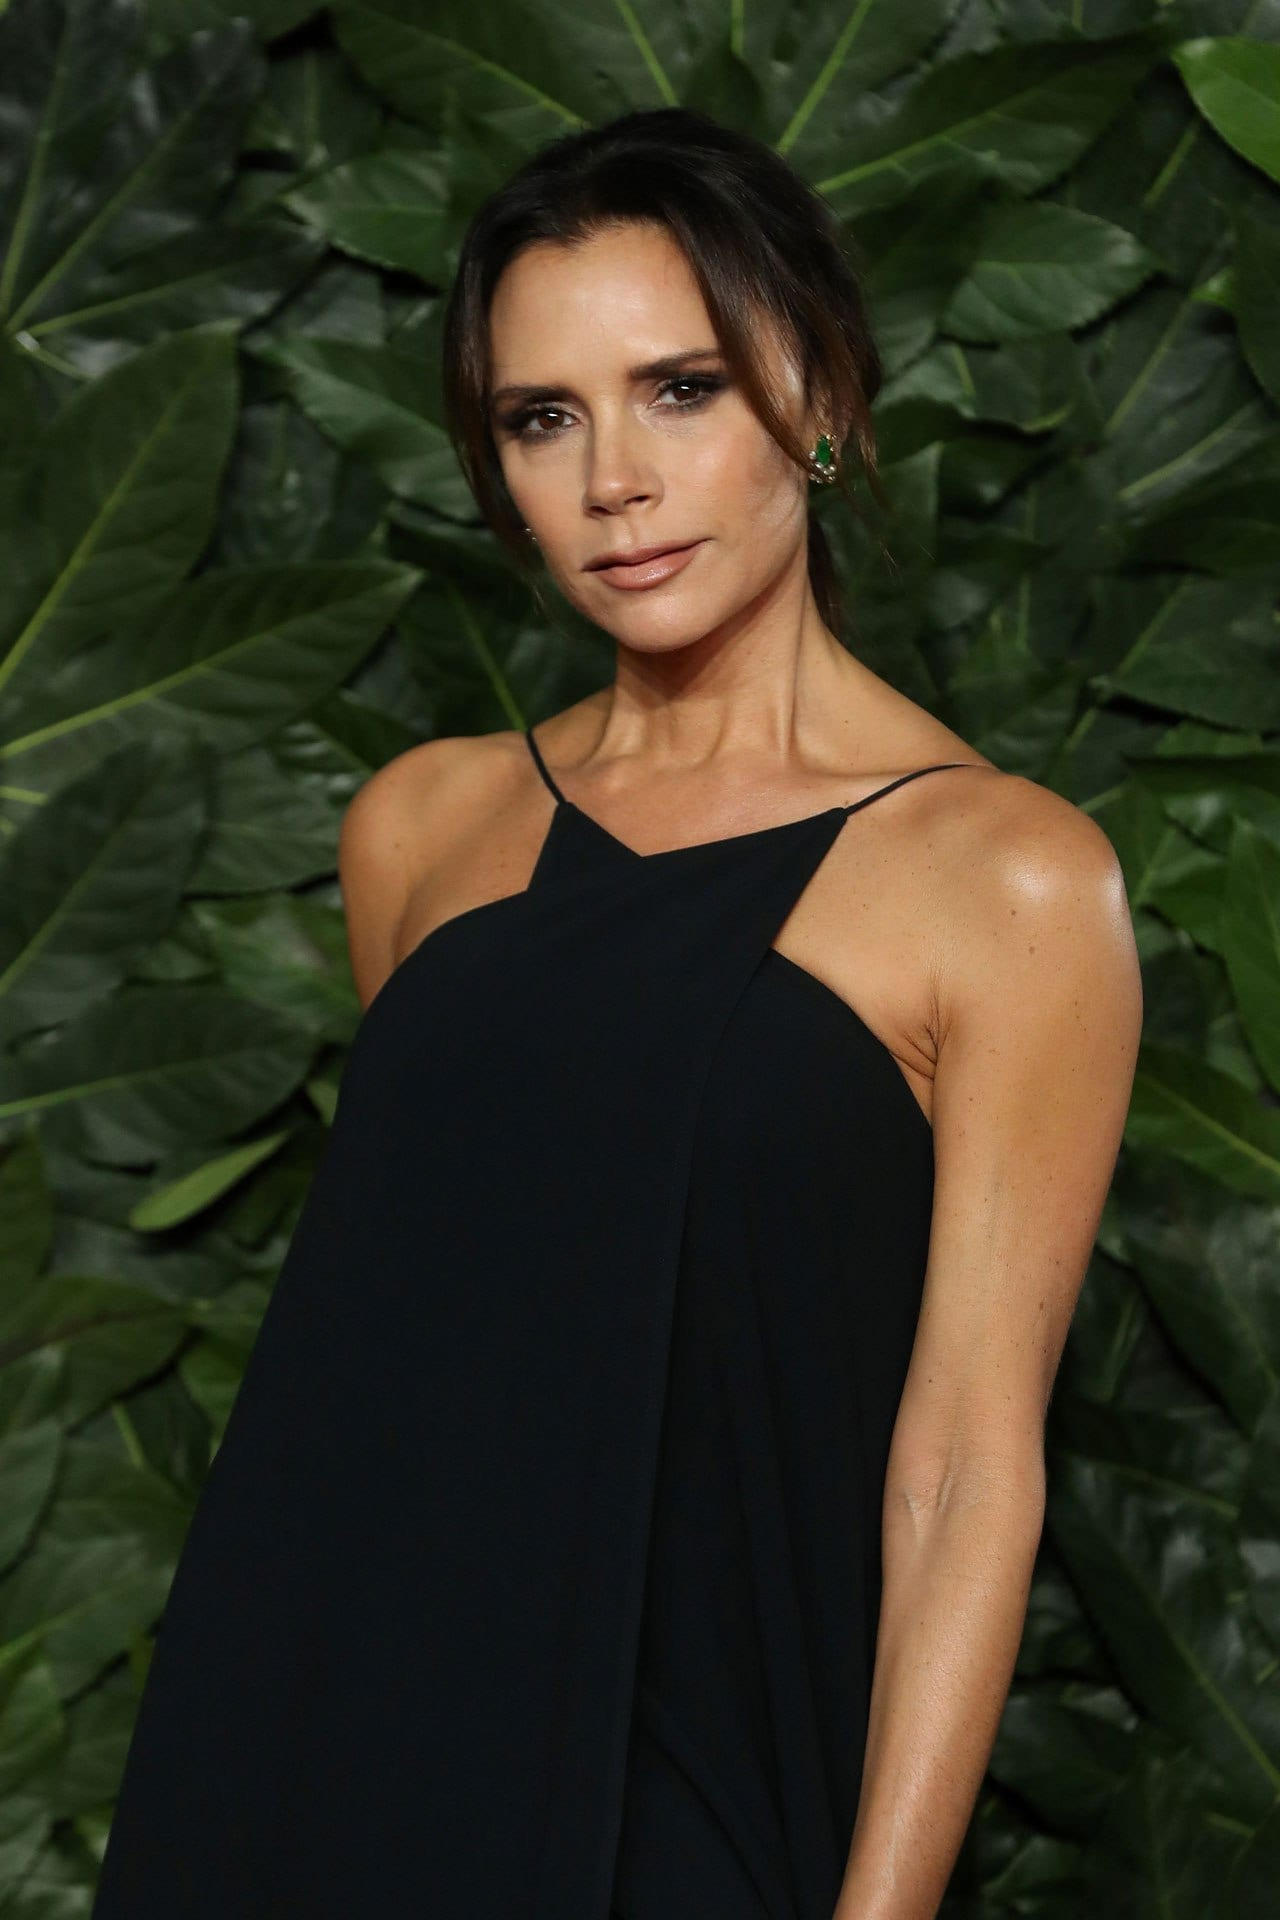 Victoria Beckham is launching her own beauty line